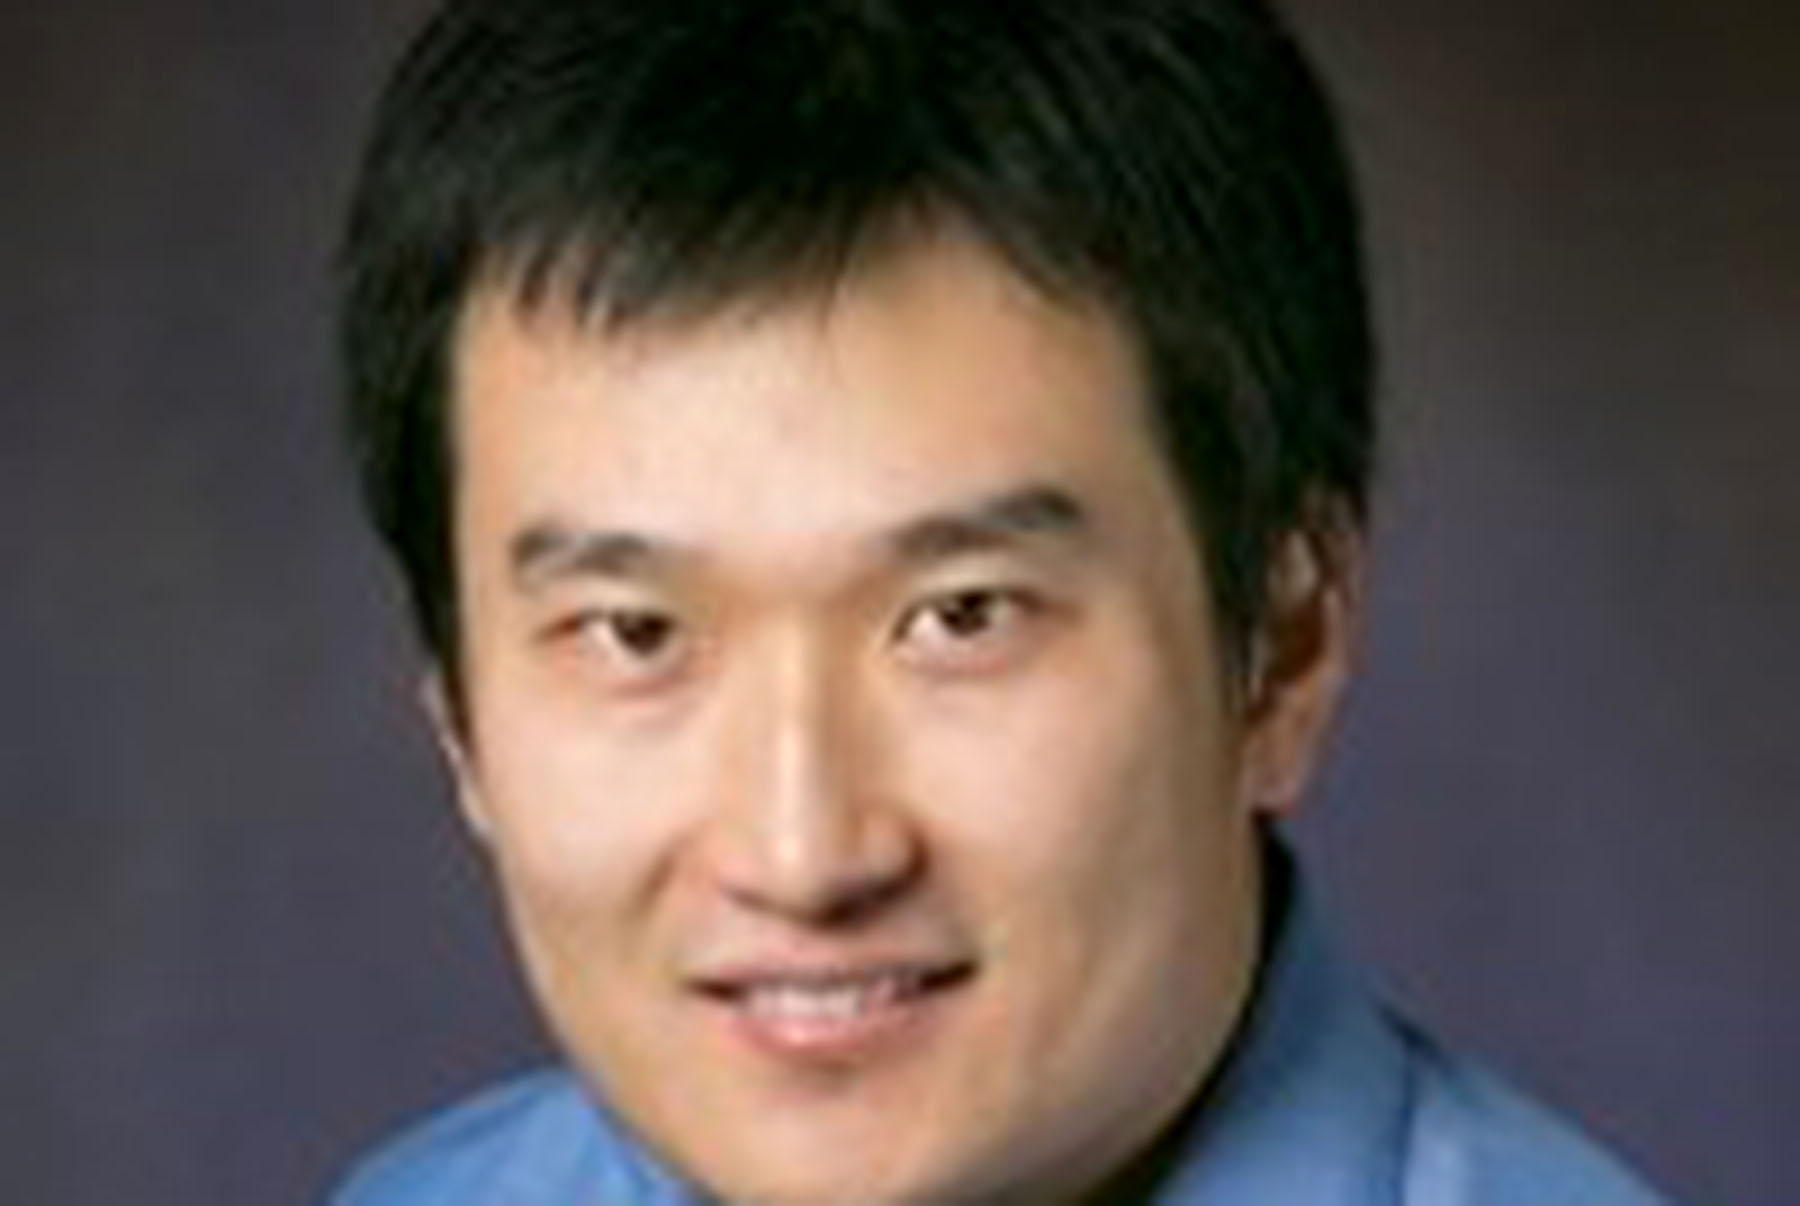 Ruoqing Zhu, Carle Illinois College of Medicine, University of Illinois at Urbana-Champaign